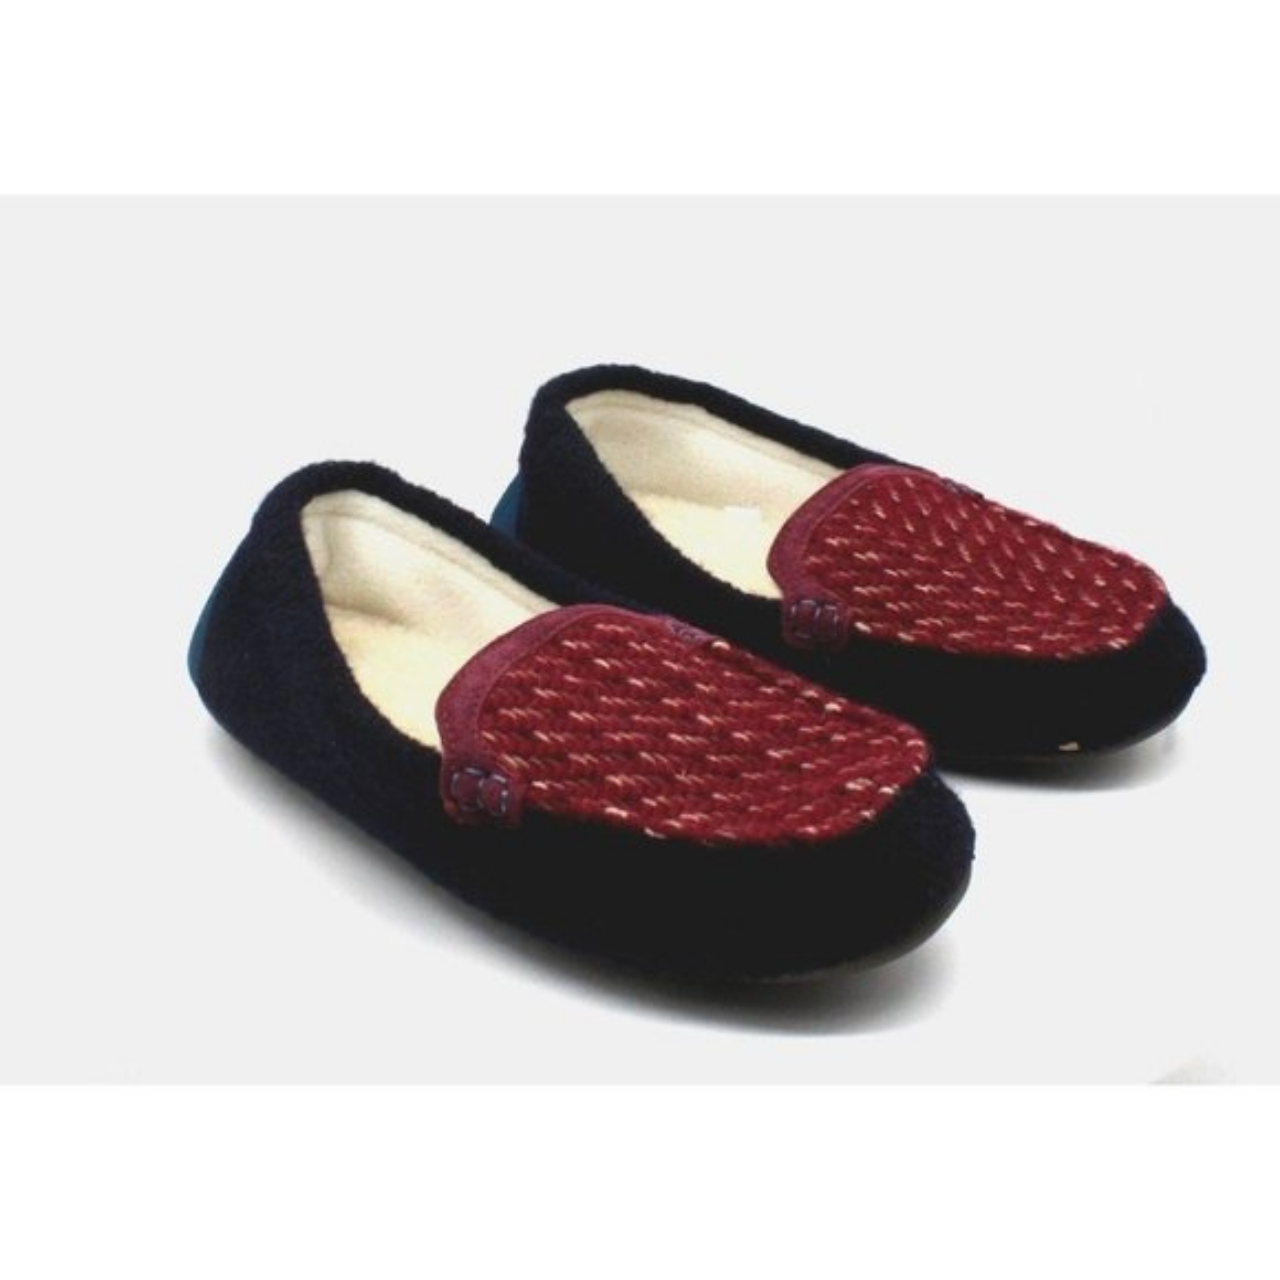 Product Image 1 - Women's Acorn Andover Moccasin Slipper  Traverse